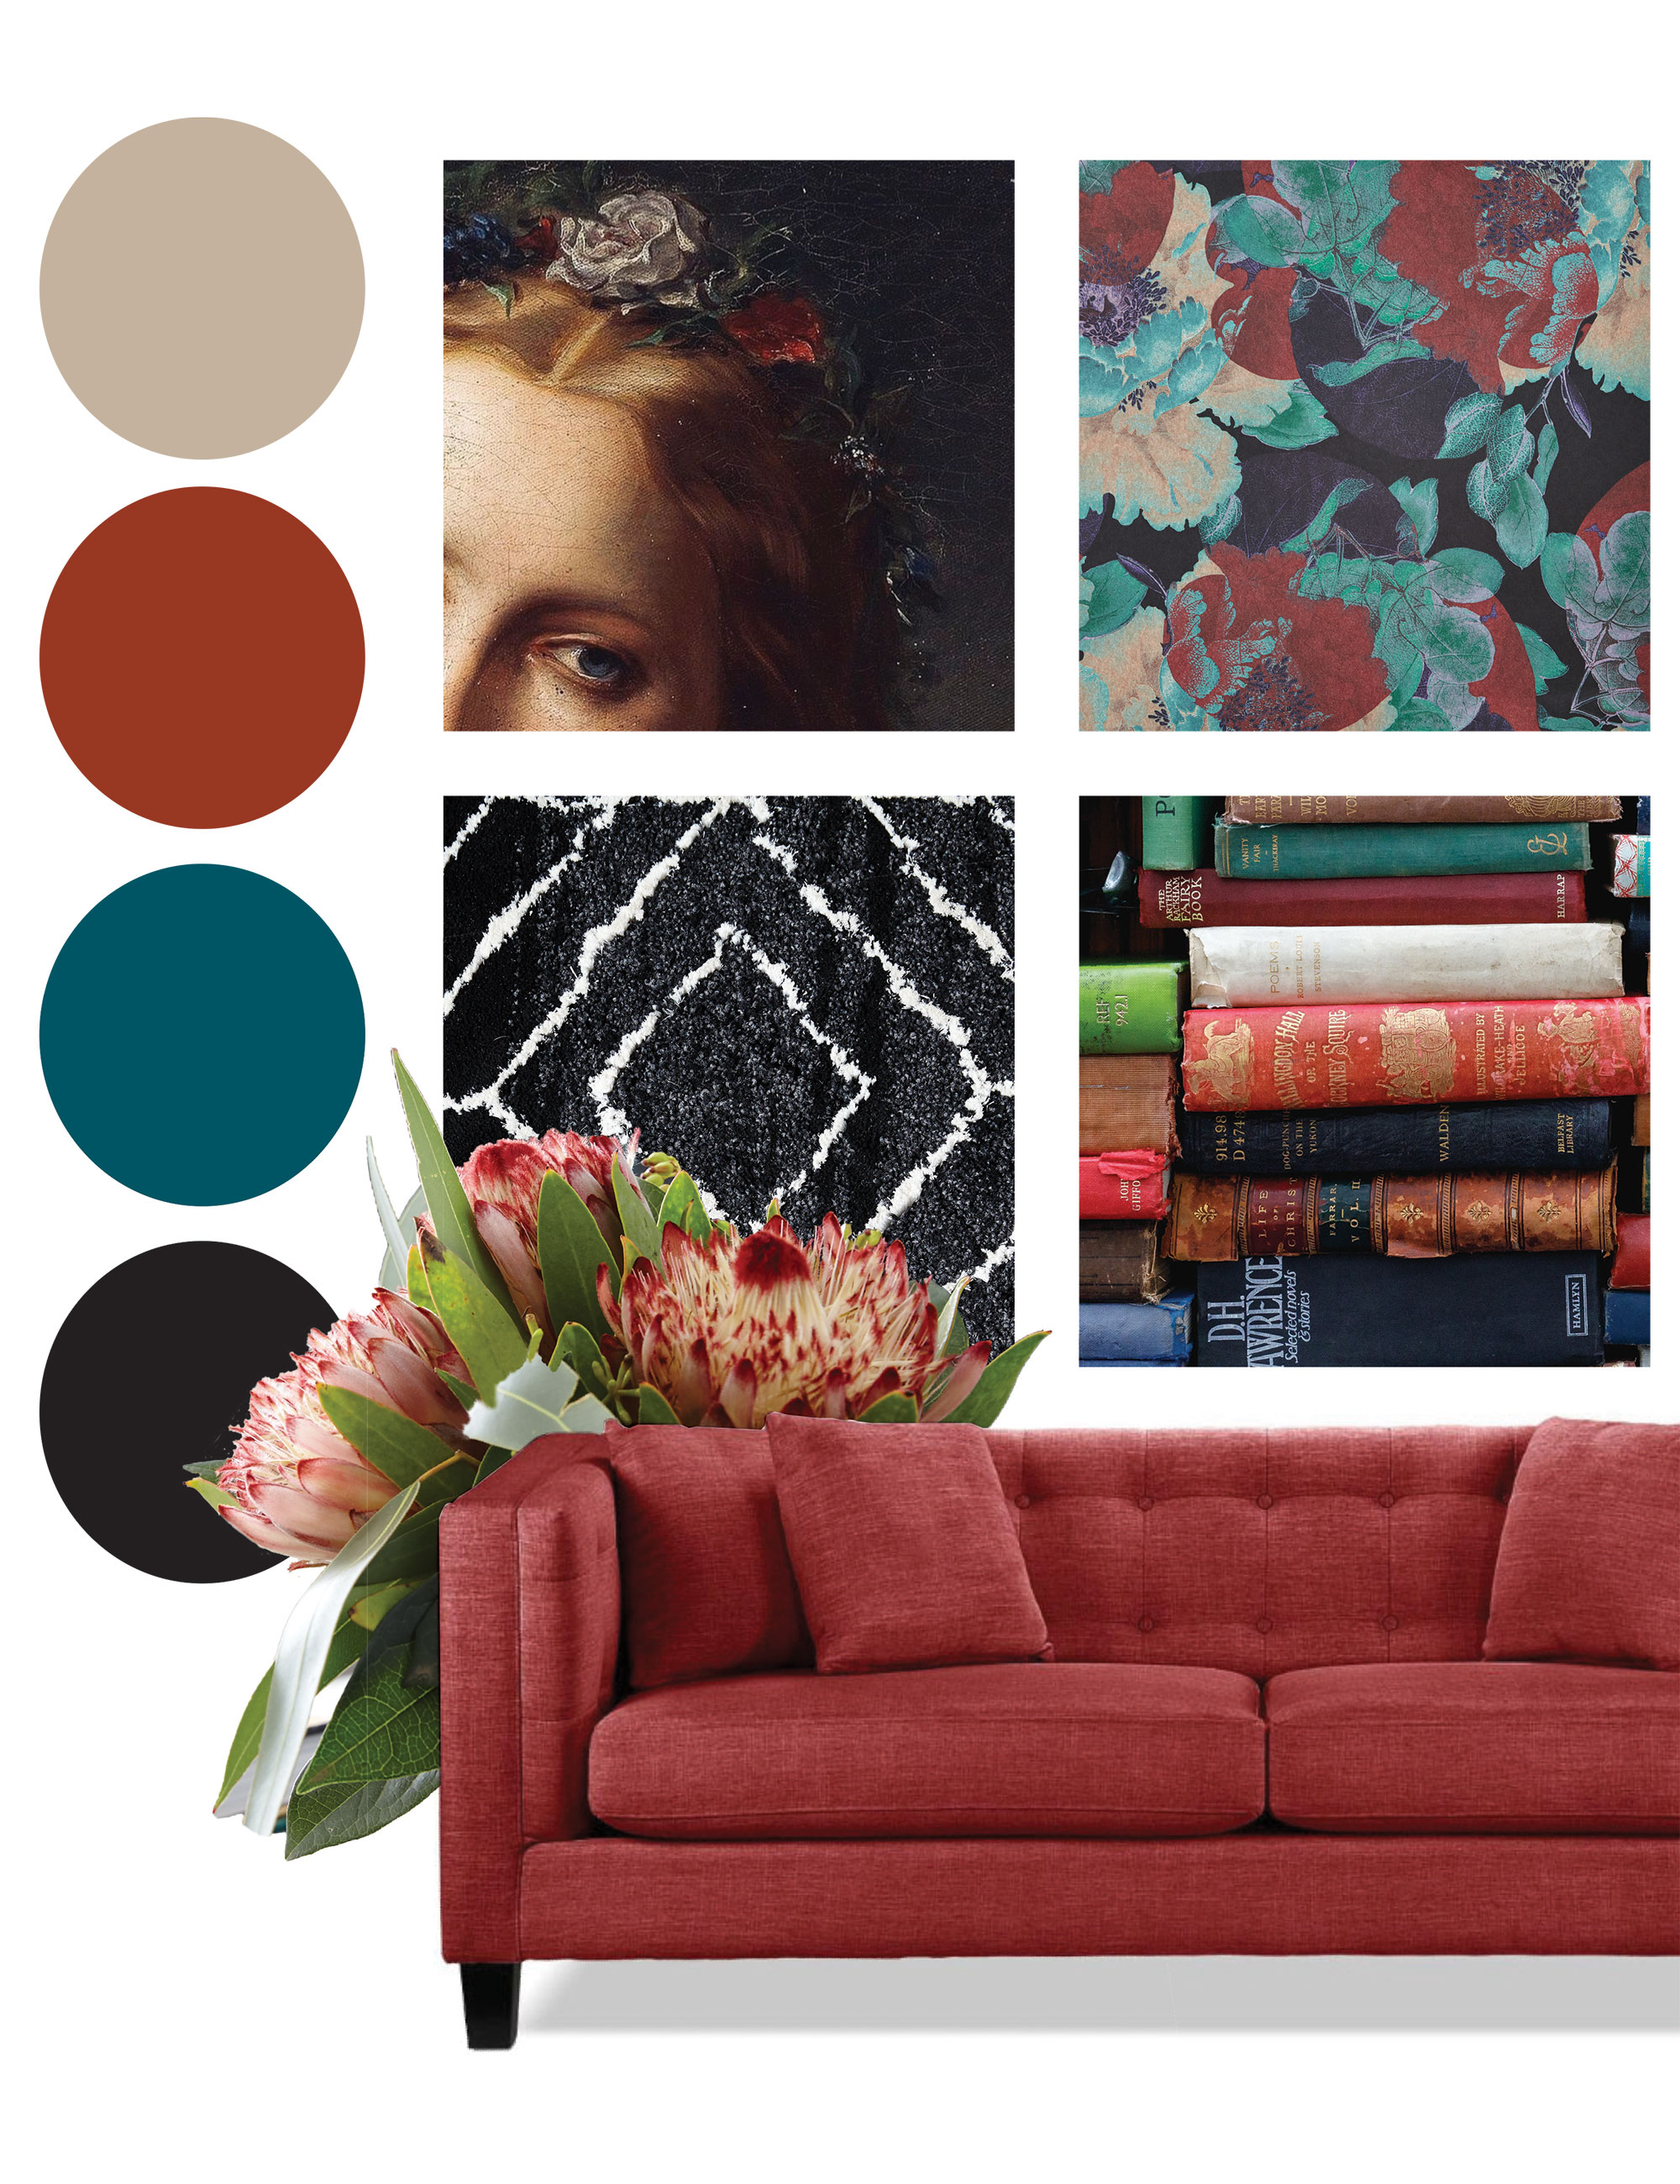 Red mood board for a living room